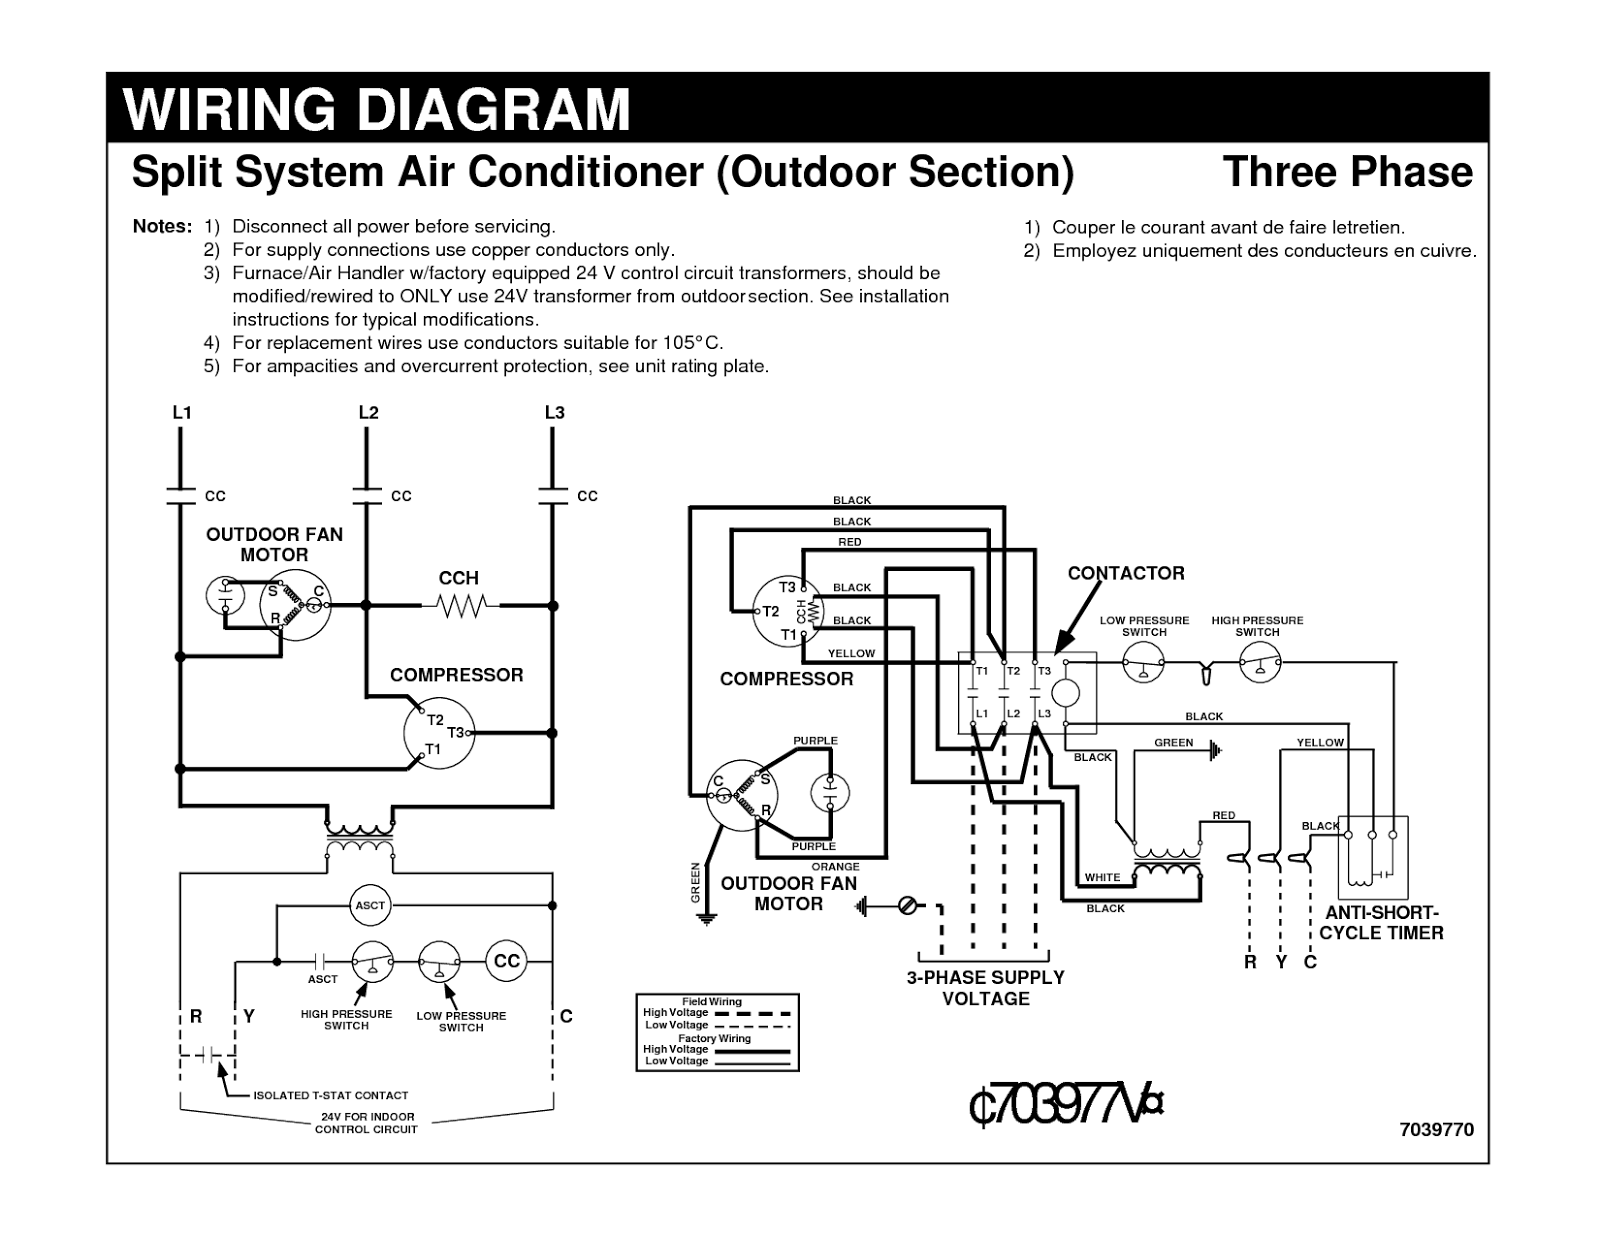 Wiring Diagram For Ac On 1994 Chevy S10 Library Layout Diagrams U2022 Rh Laurafinlay Co Uk Schematic